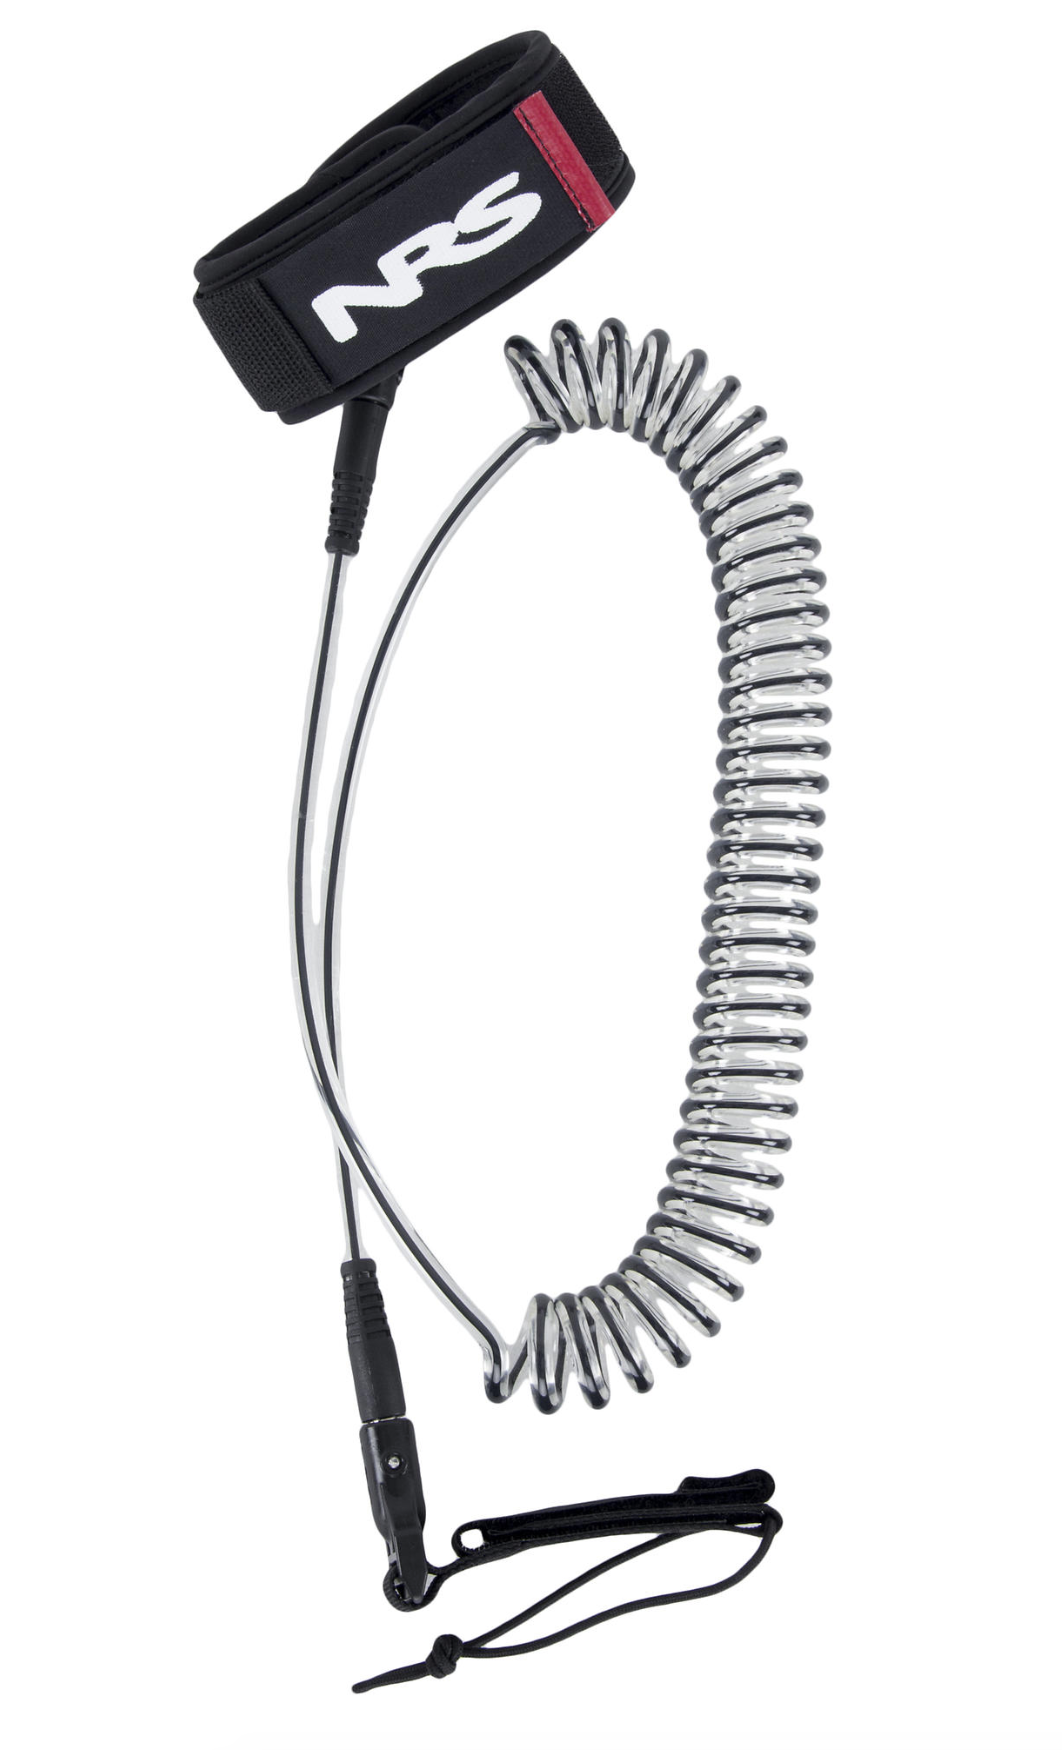 Rigging & Outfitting: Coil SUP Leash by NRS - Image 4826